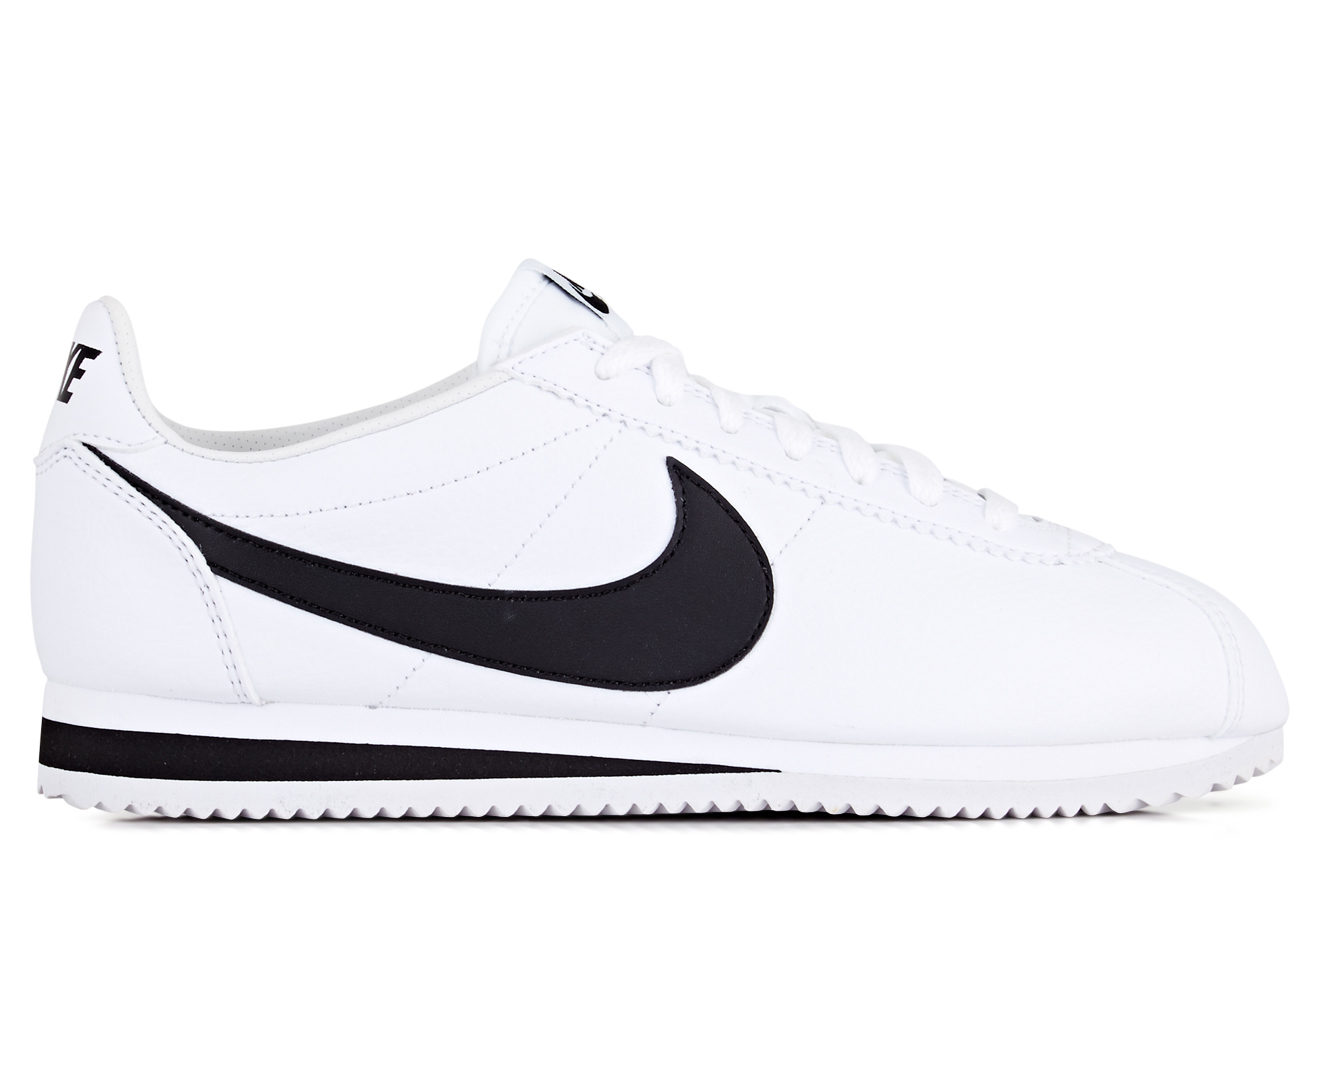 0c72ee3adc7c Image is loading Nike-Men-039-s-Classic-Cortez-Leather-Shoe-